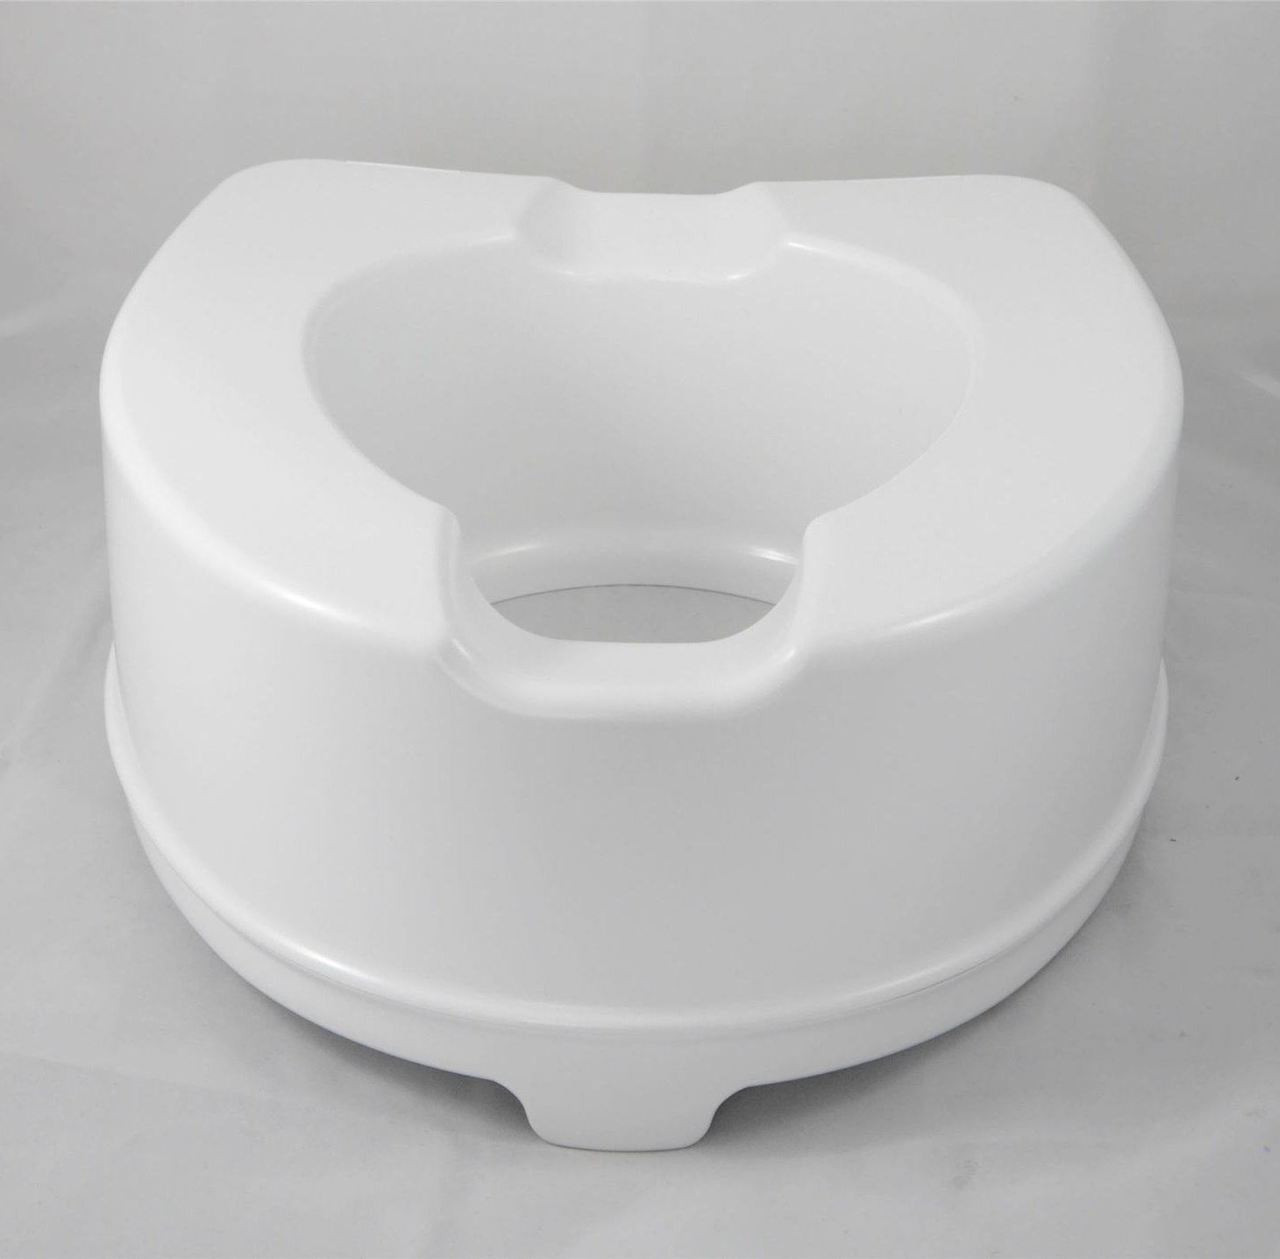 Tremendous Able2 15Cm Raised Elevated Toilet Seat Cjindustries Chair Design For Home Cjindustriesco